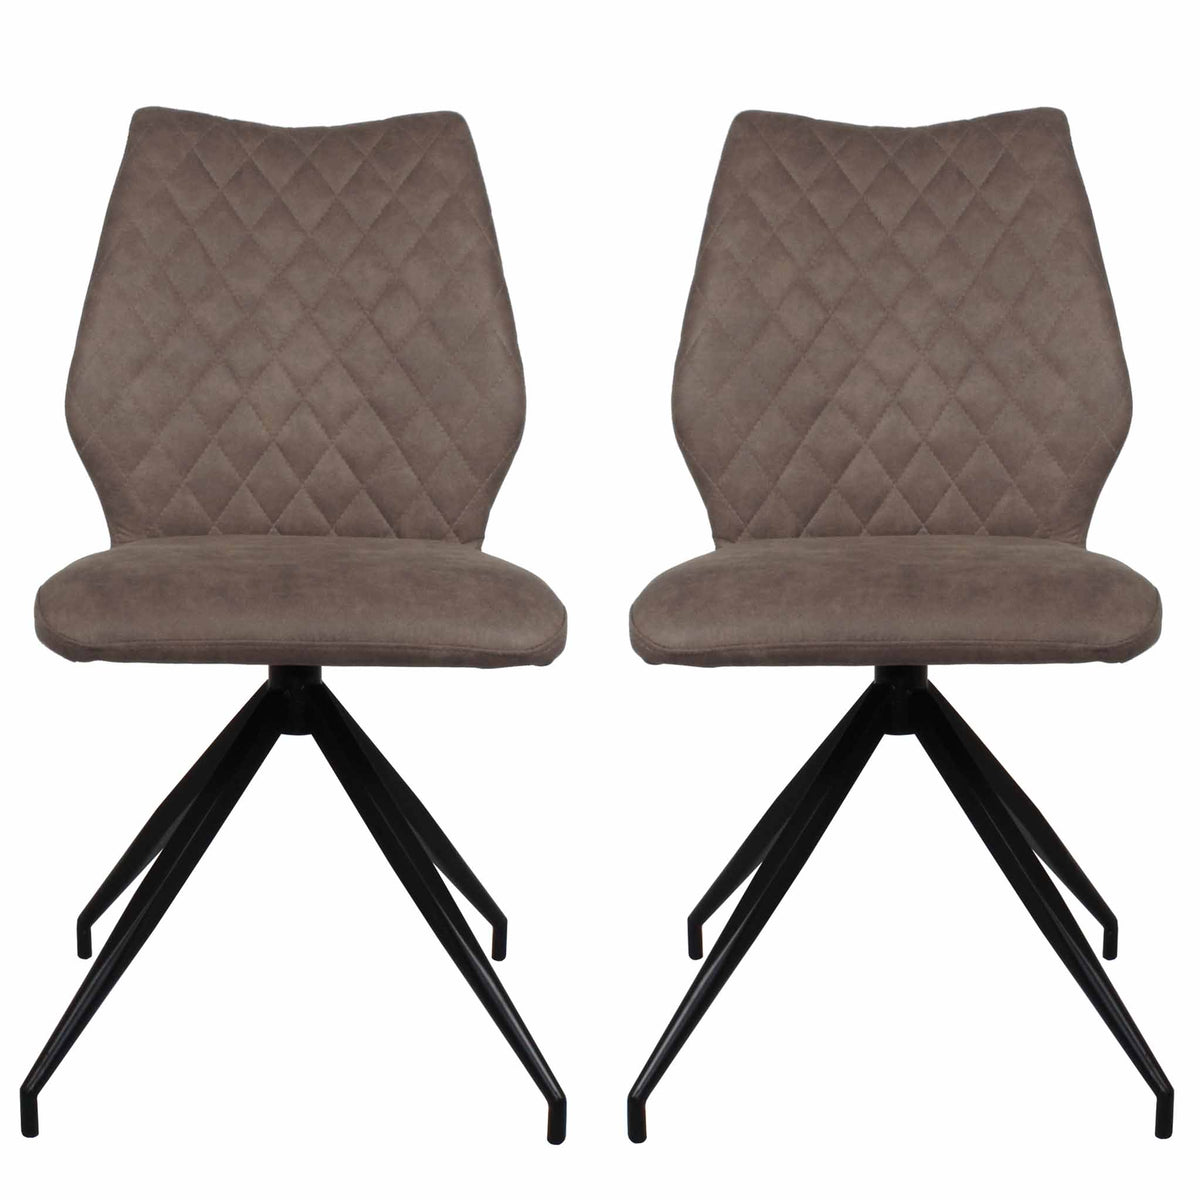 Rosewell Dining Chairs - Set of 2 Chairs